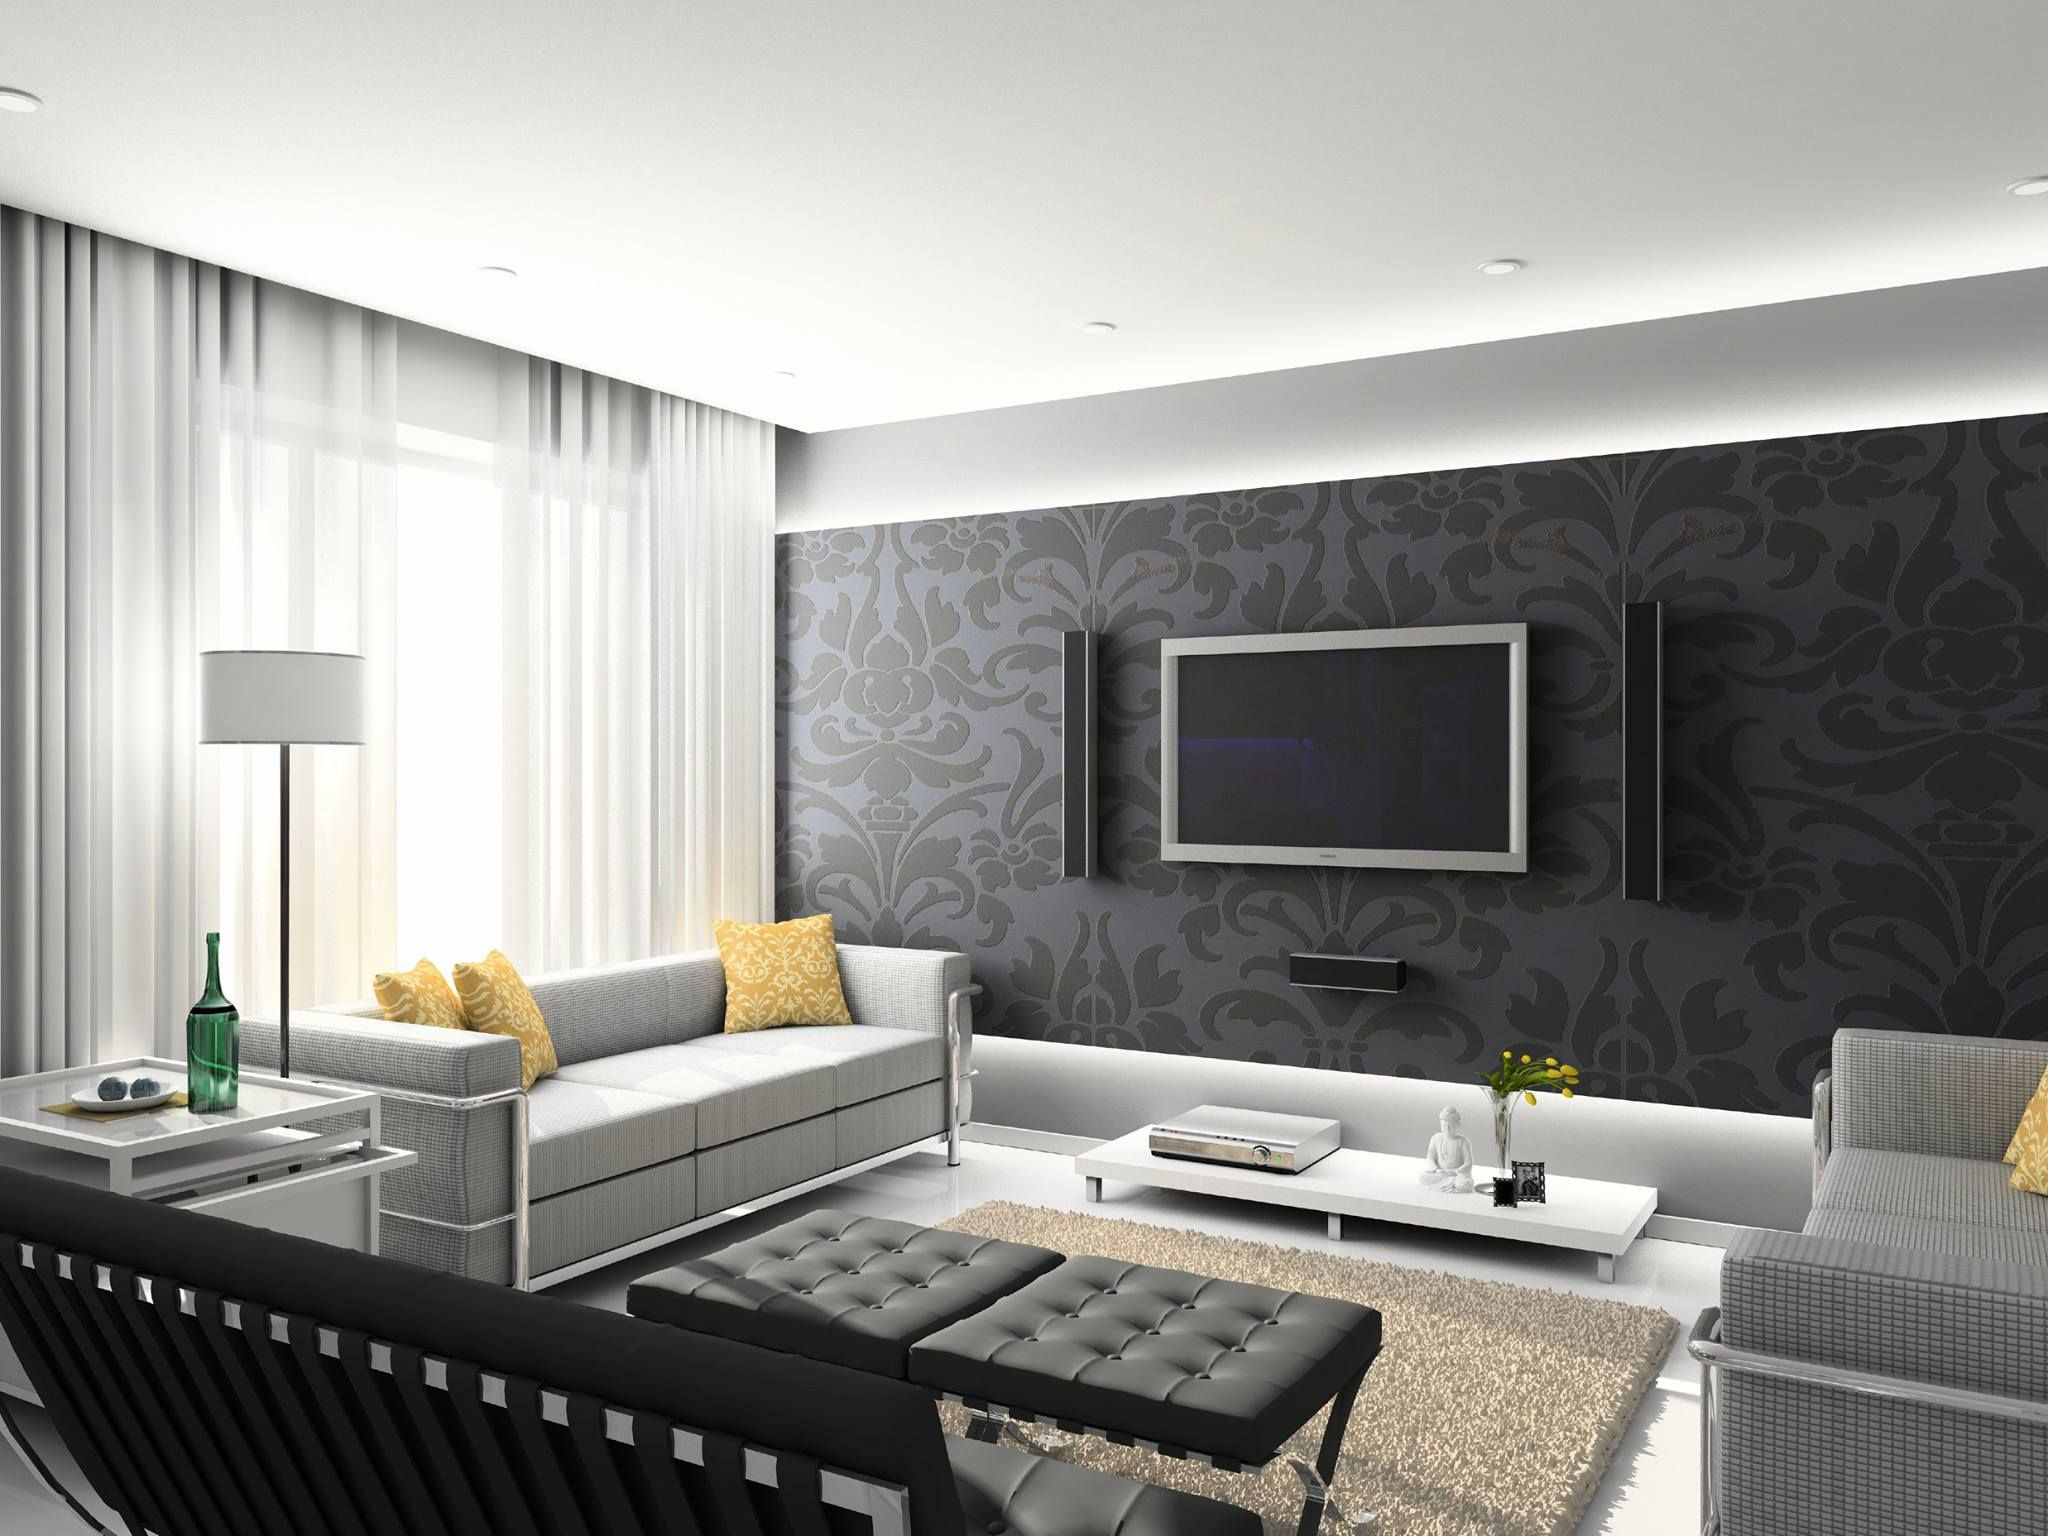 Minimalist interior decor for modern living room design ideas with elegant  grey plush seat sofa including fortable assotred throw.